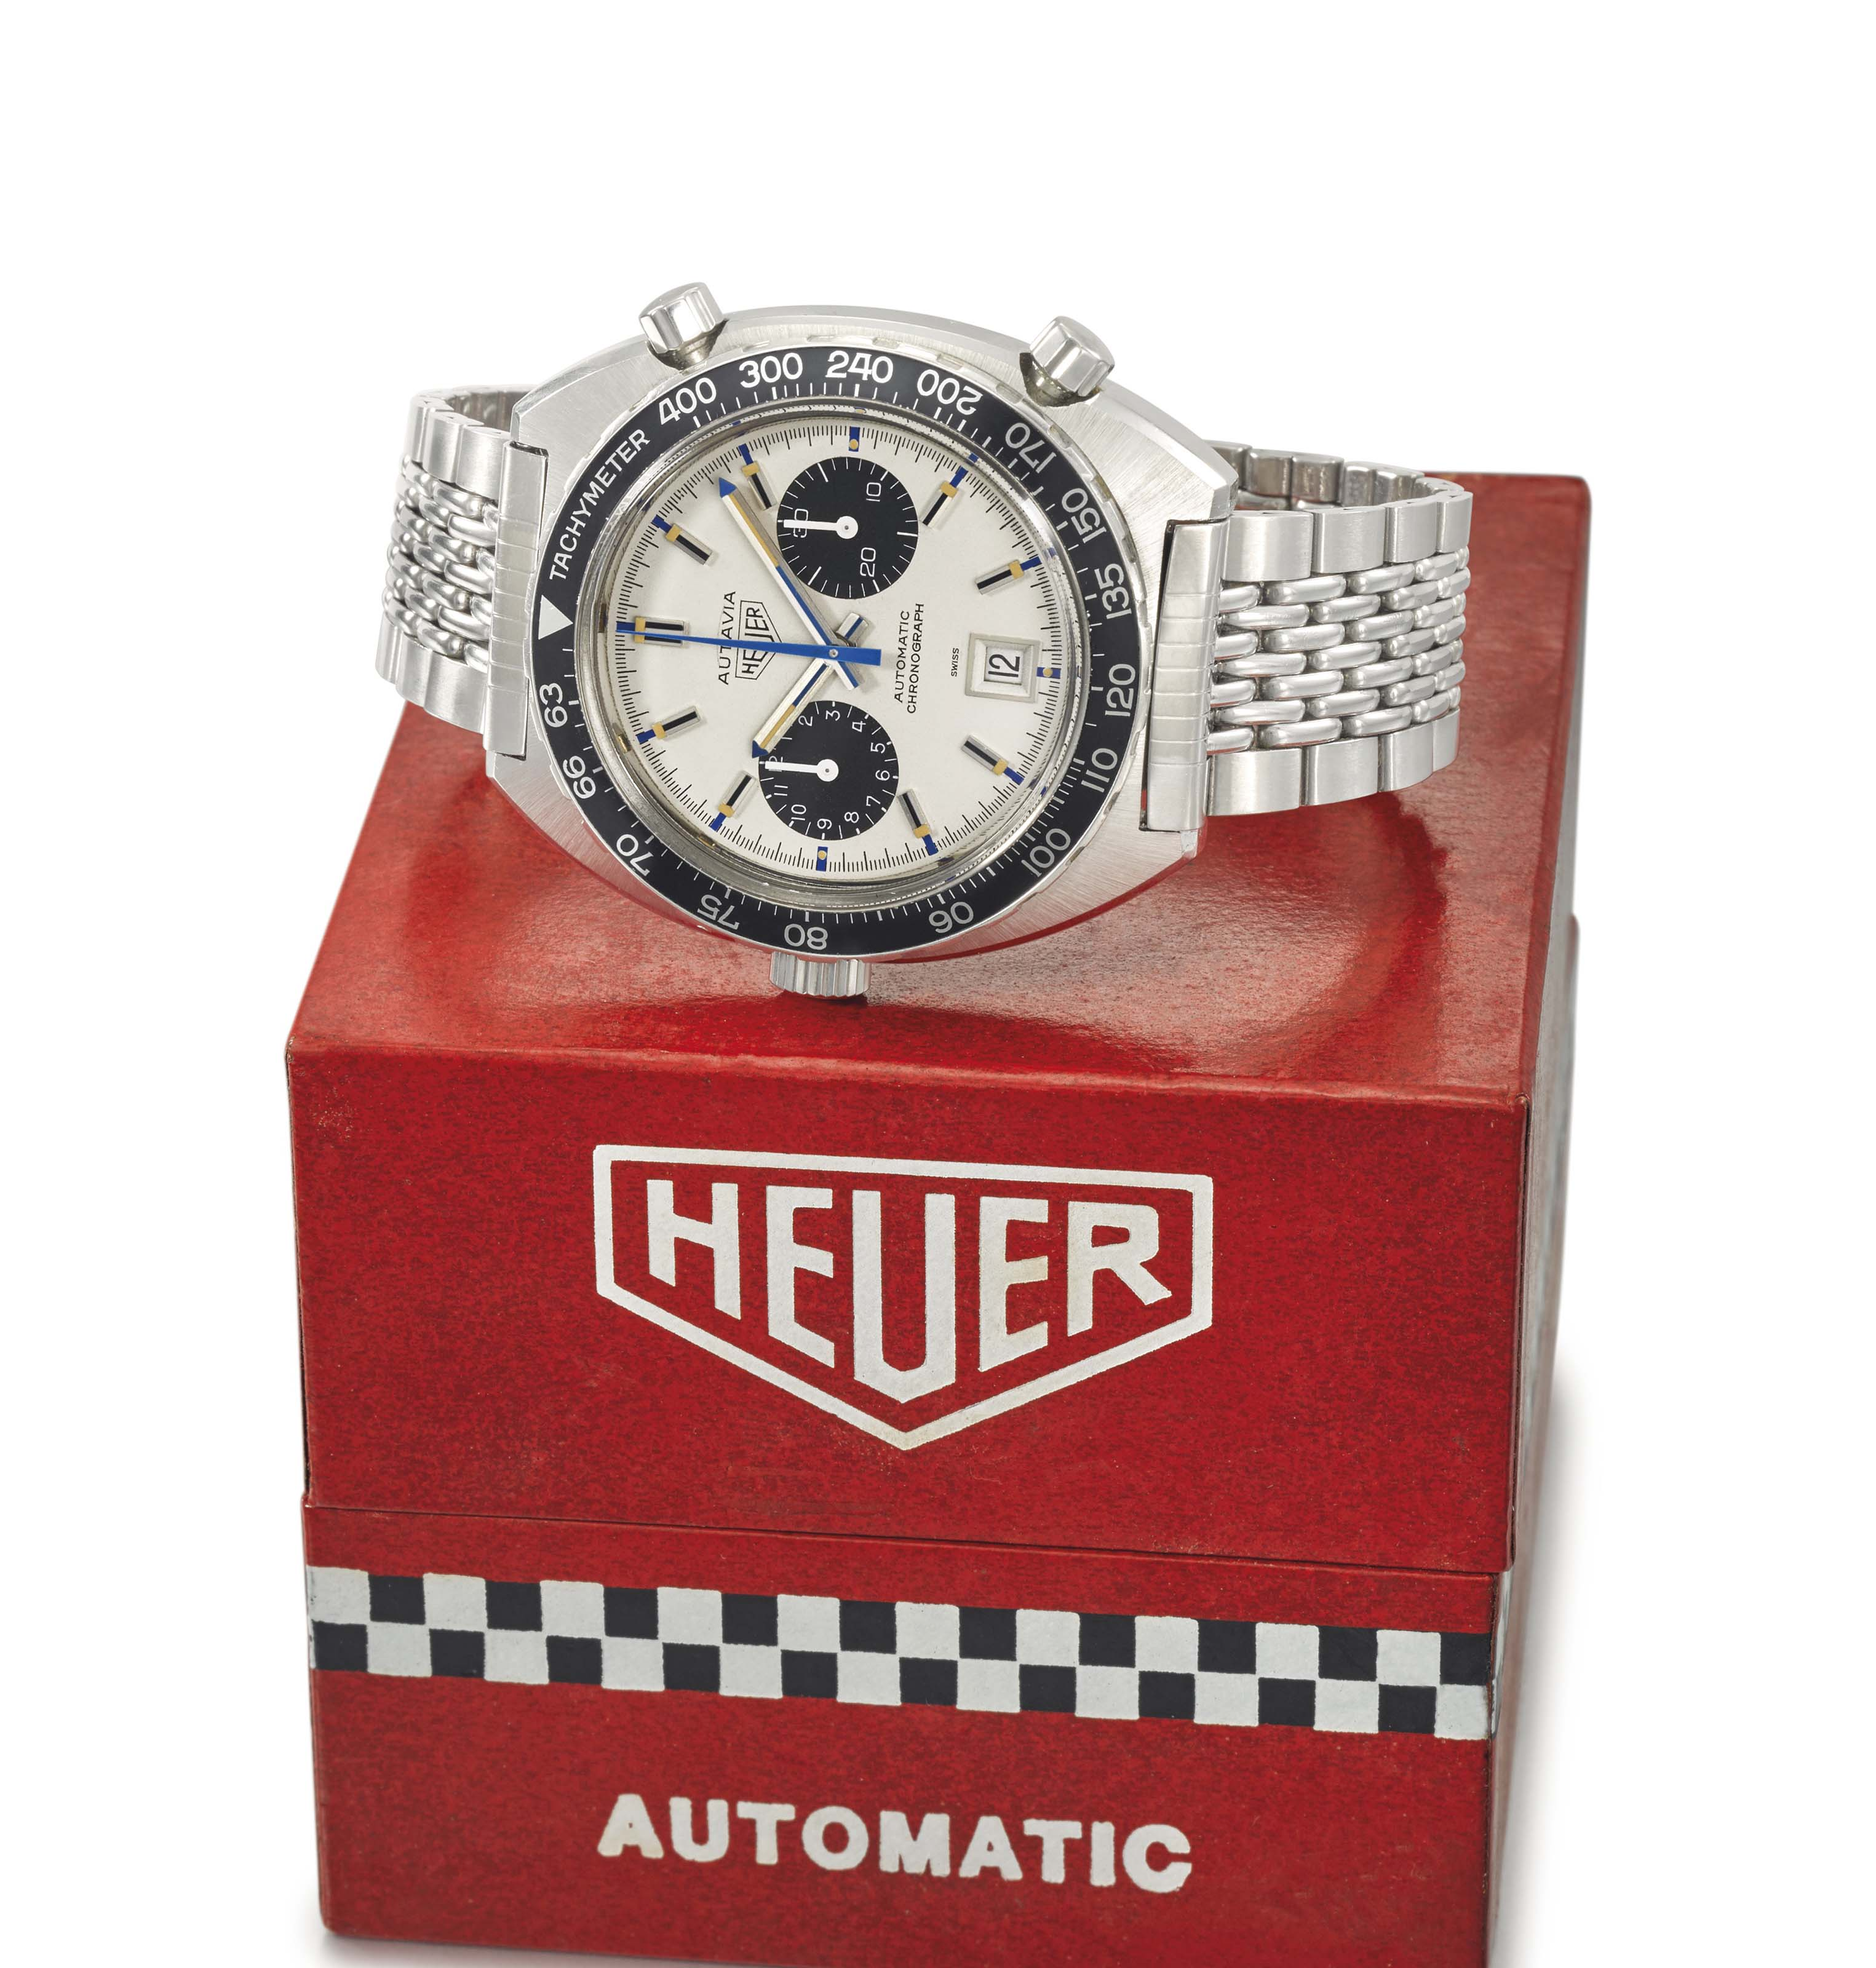 Heuer. A rare and large stainless steel tonneau-shaped automatic chronograph wristwatch with date